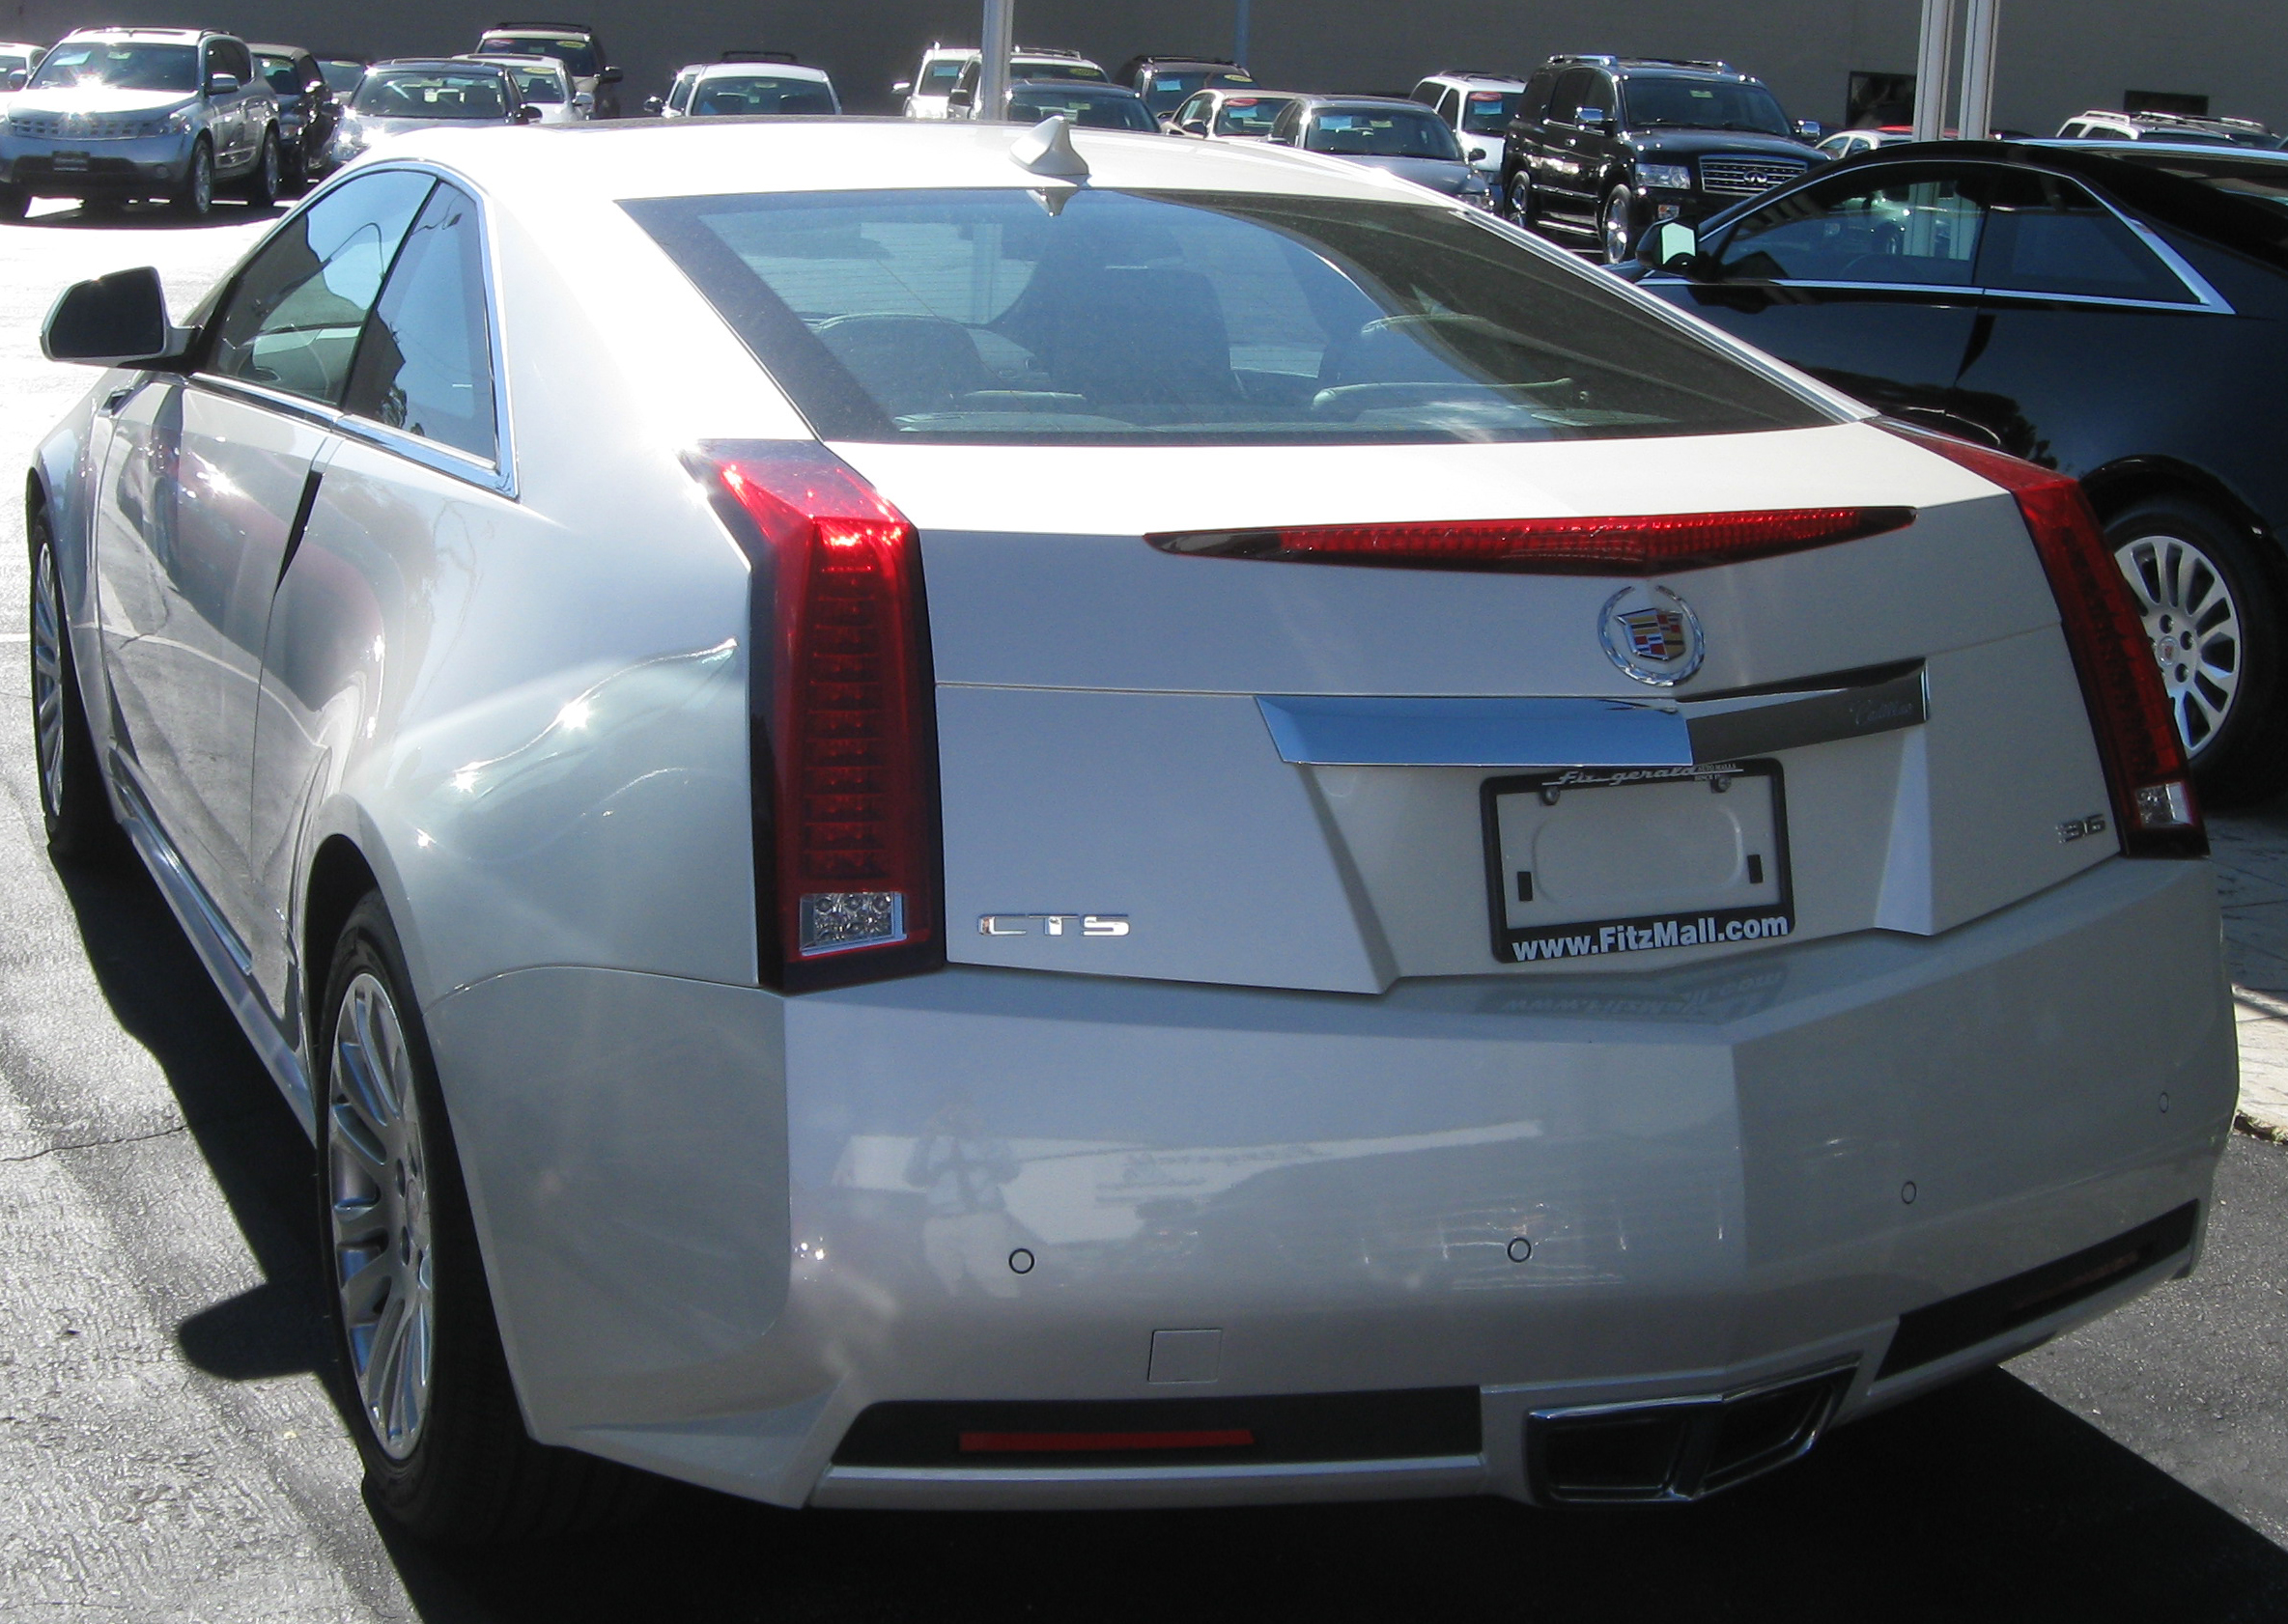 File 2011 cadillac cts coupe rear 10 22 2010 jpg